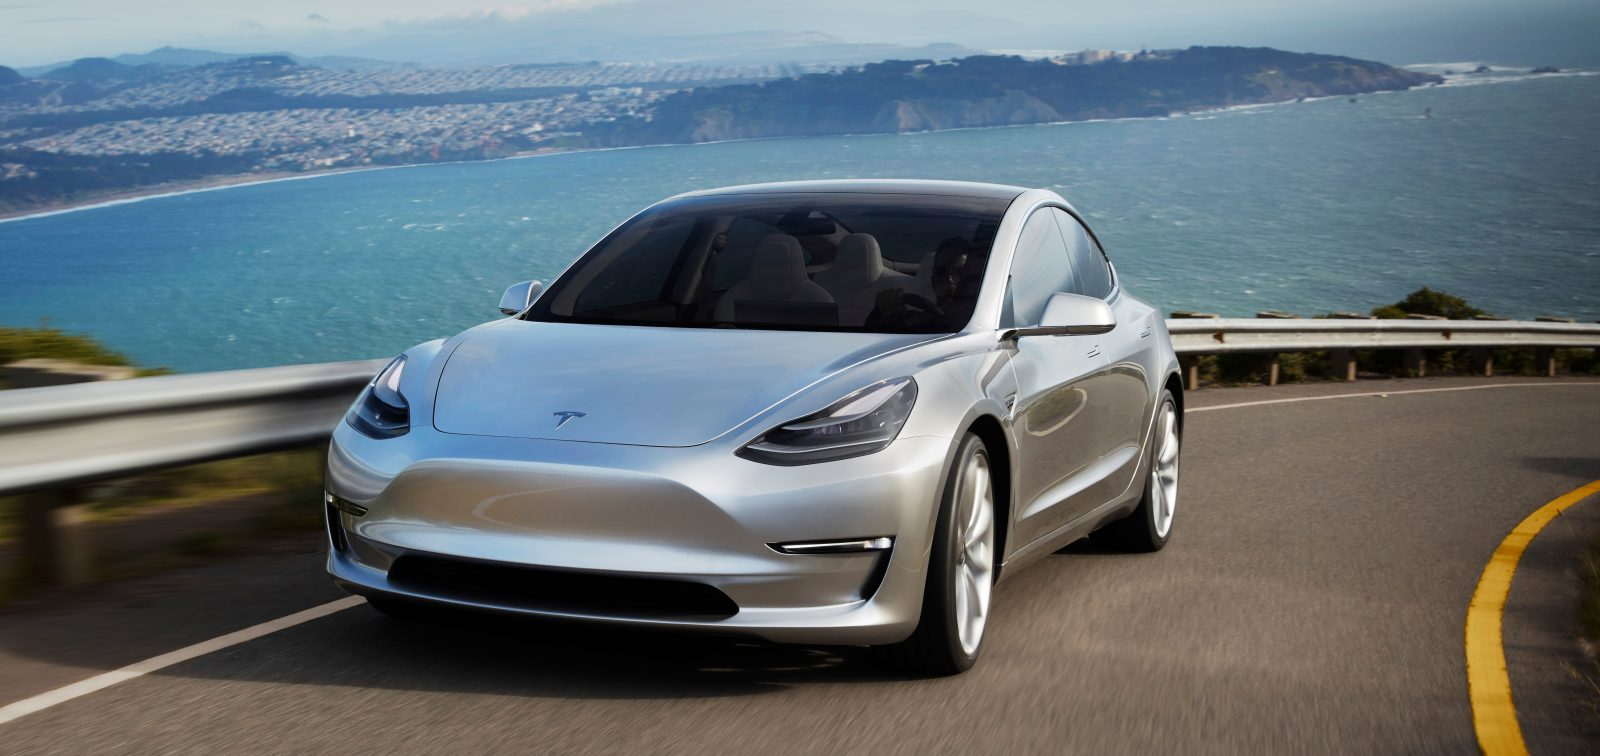 Tesla Model 3 in India : All the updates you need to know